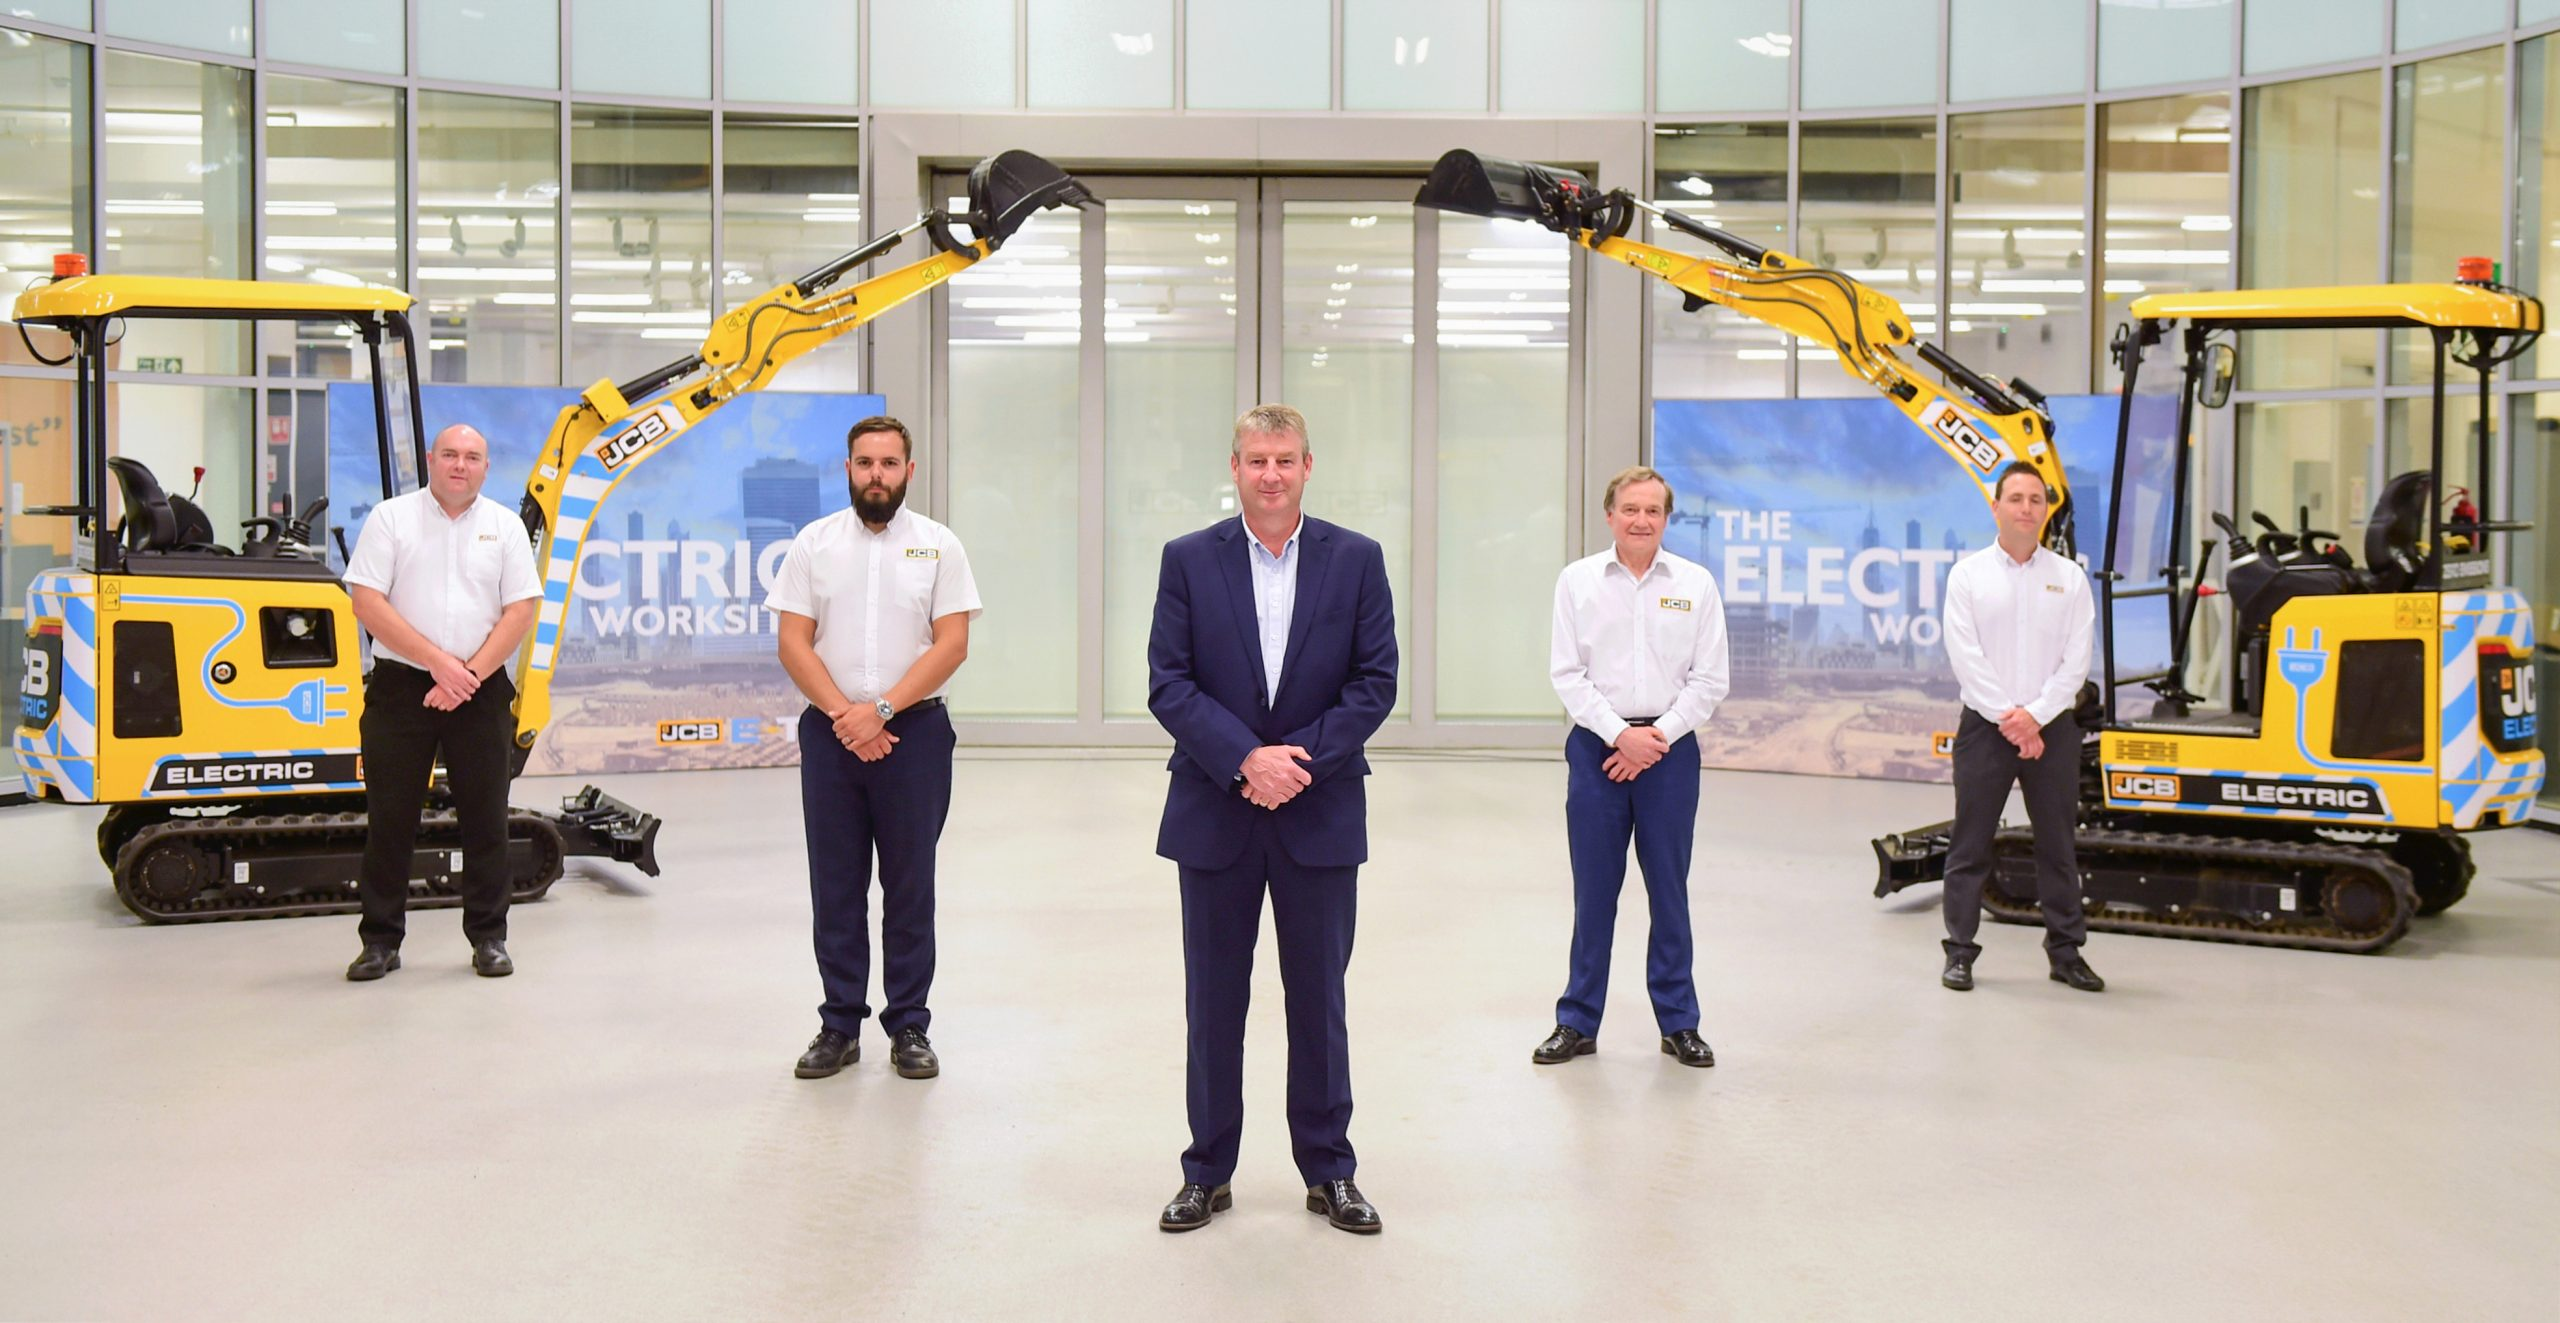 World's first electric digger wins MacRobert Award for UK engineering innovation